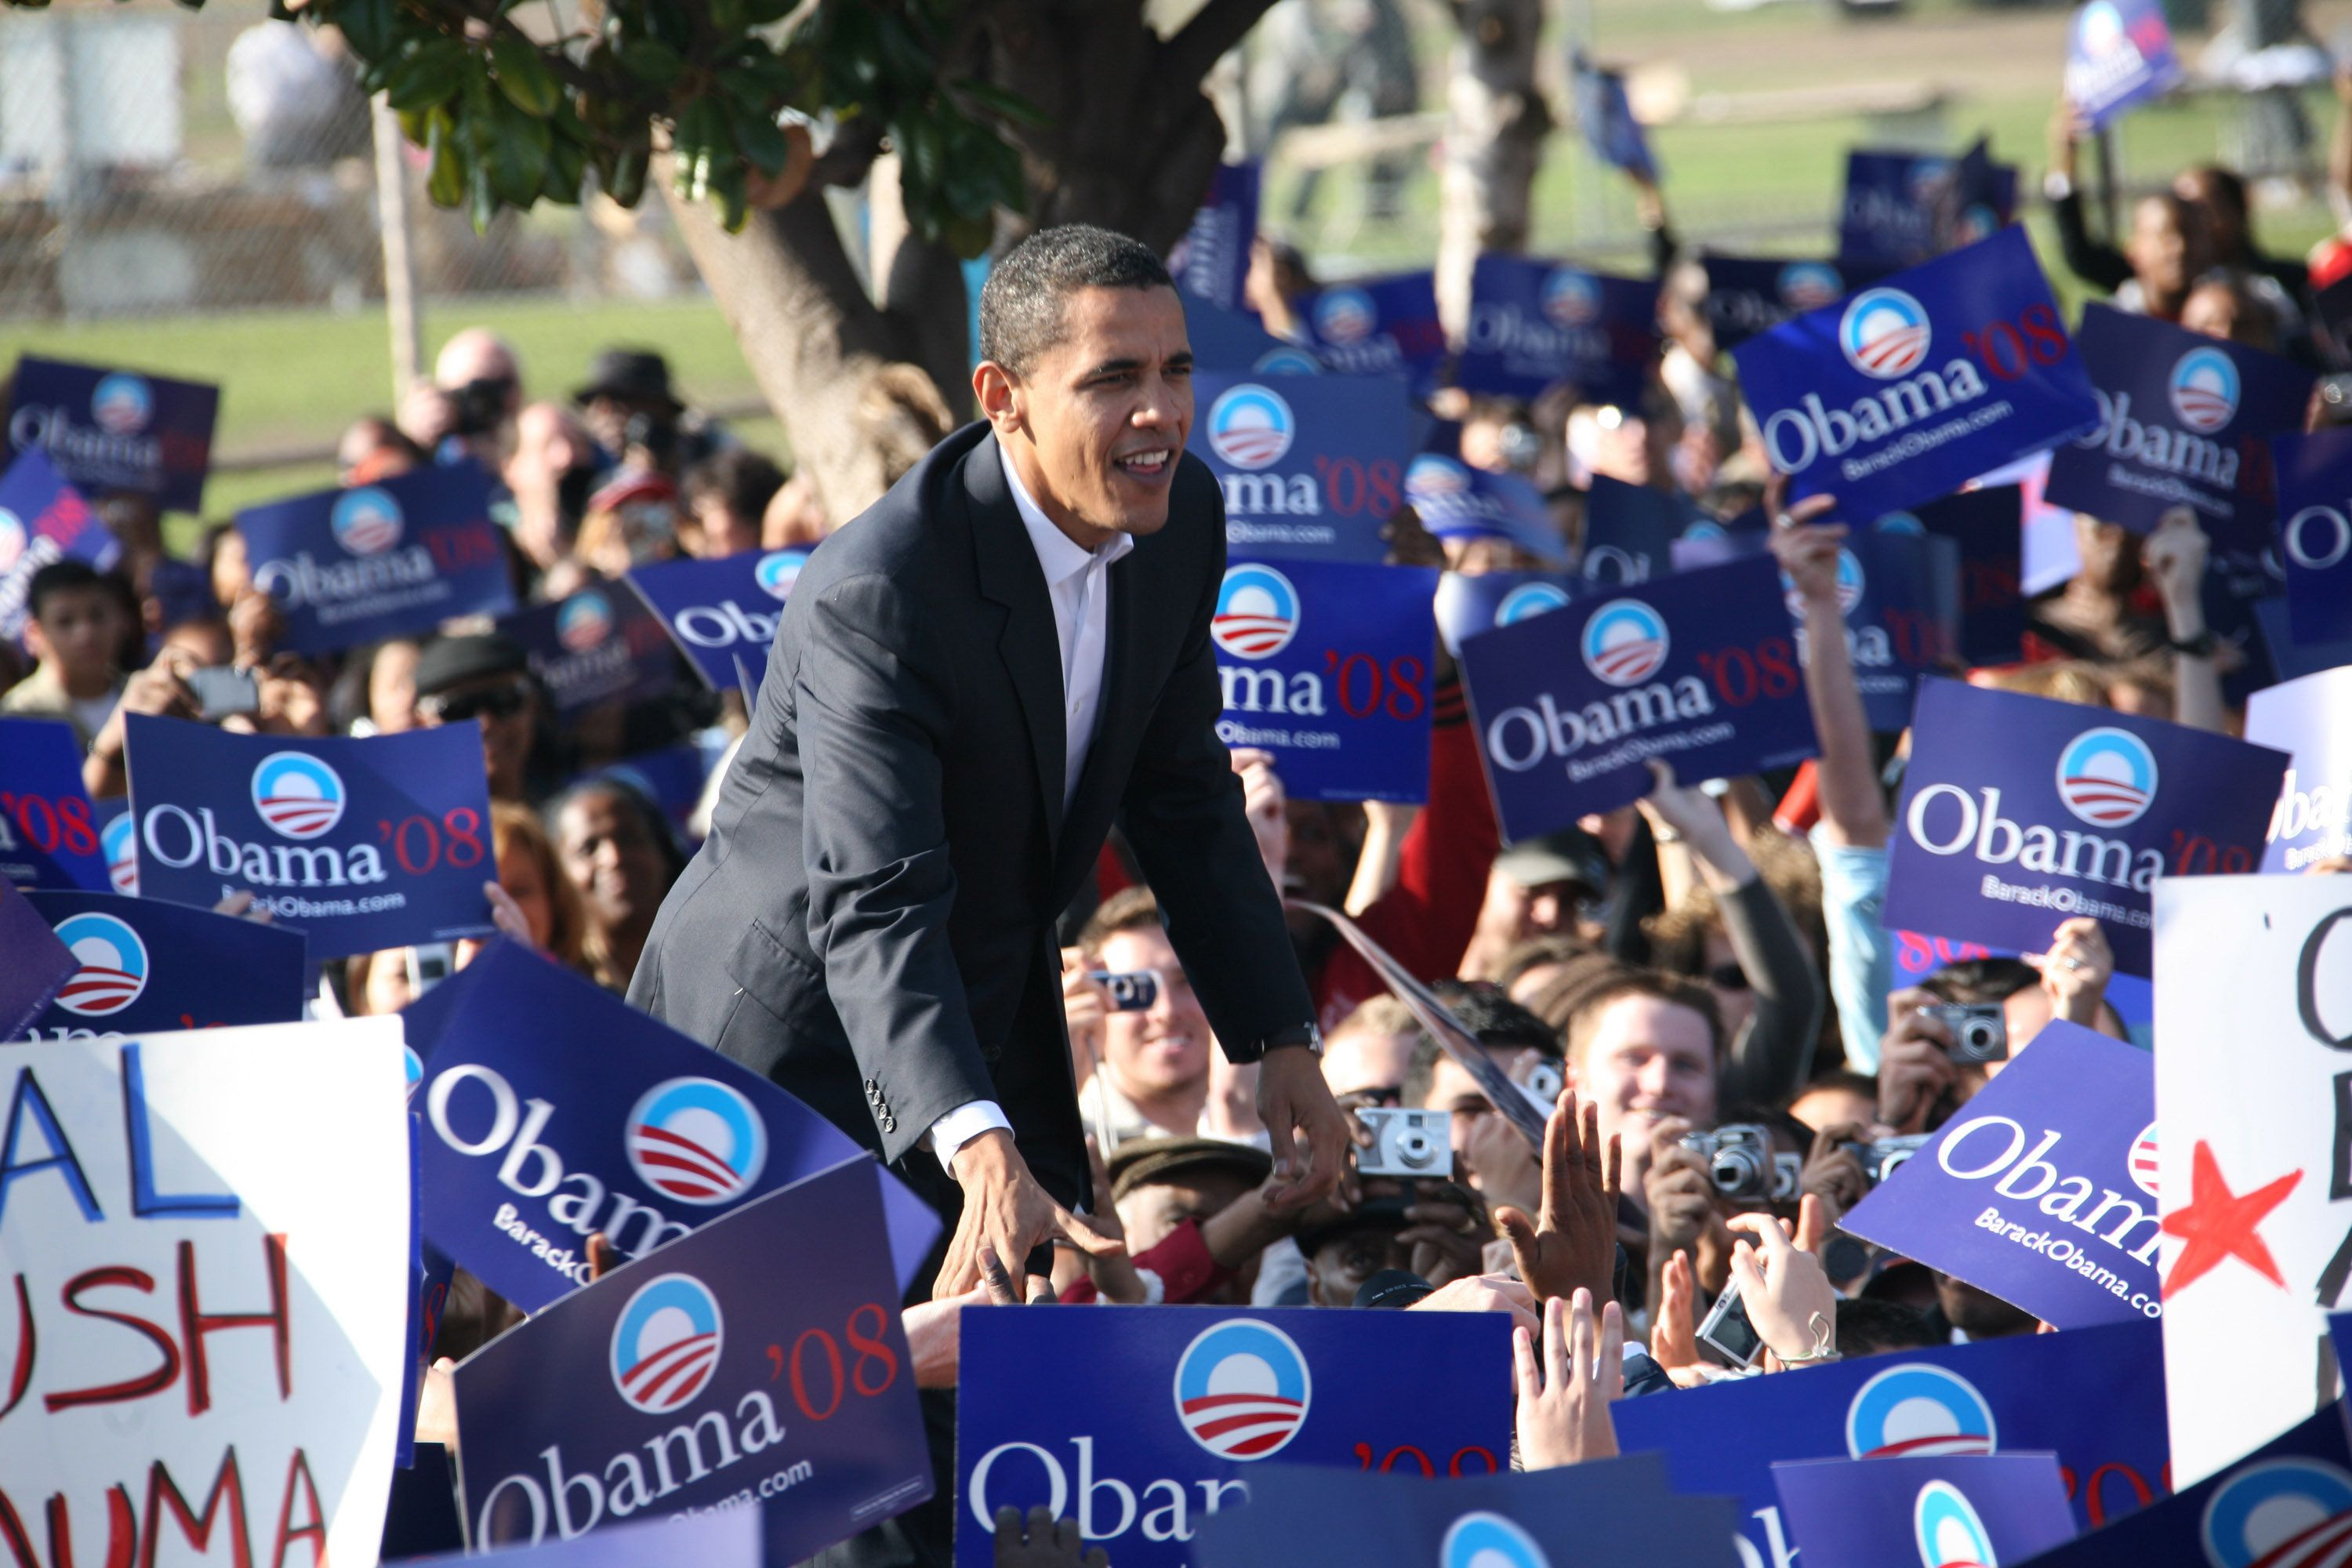 Senator Barack Obama rallies supporters for his 2008 Presidential campaign during a rally at the Rancho Cienega Sports Complex in Los Angeles Tuesday afternoon.  The rally was his first official campaign stop in California since announcing his presidential intentions more than a week ago. (Photo by Malcolm Ali/WireImage)